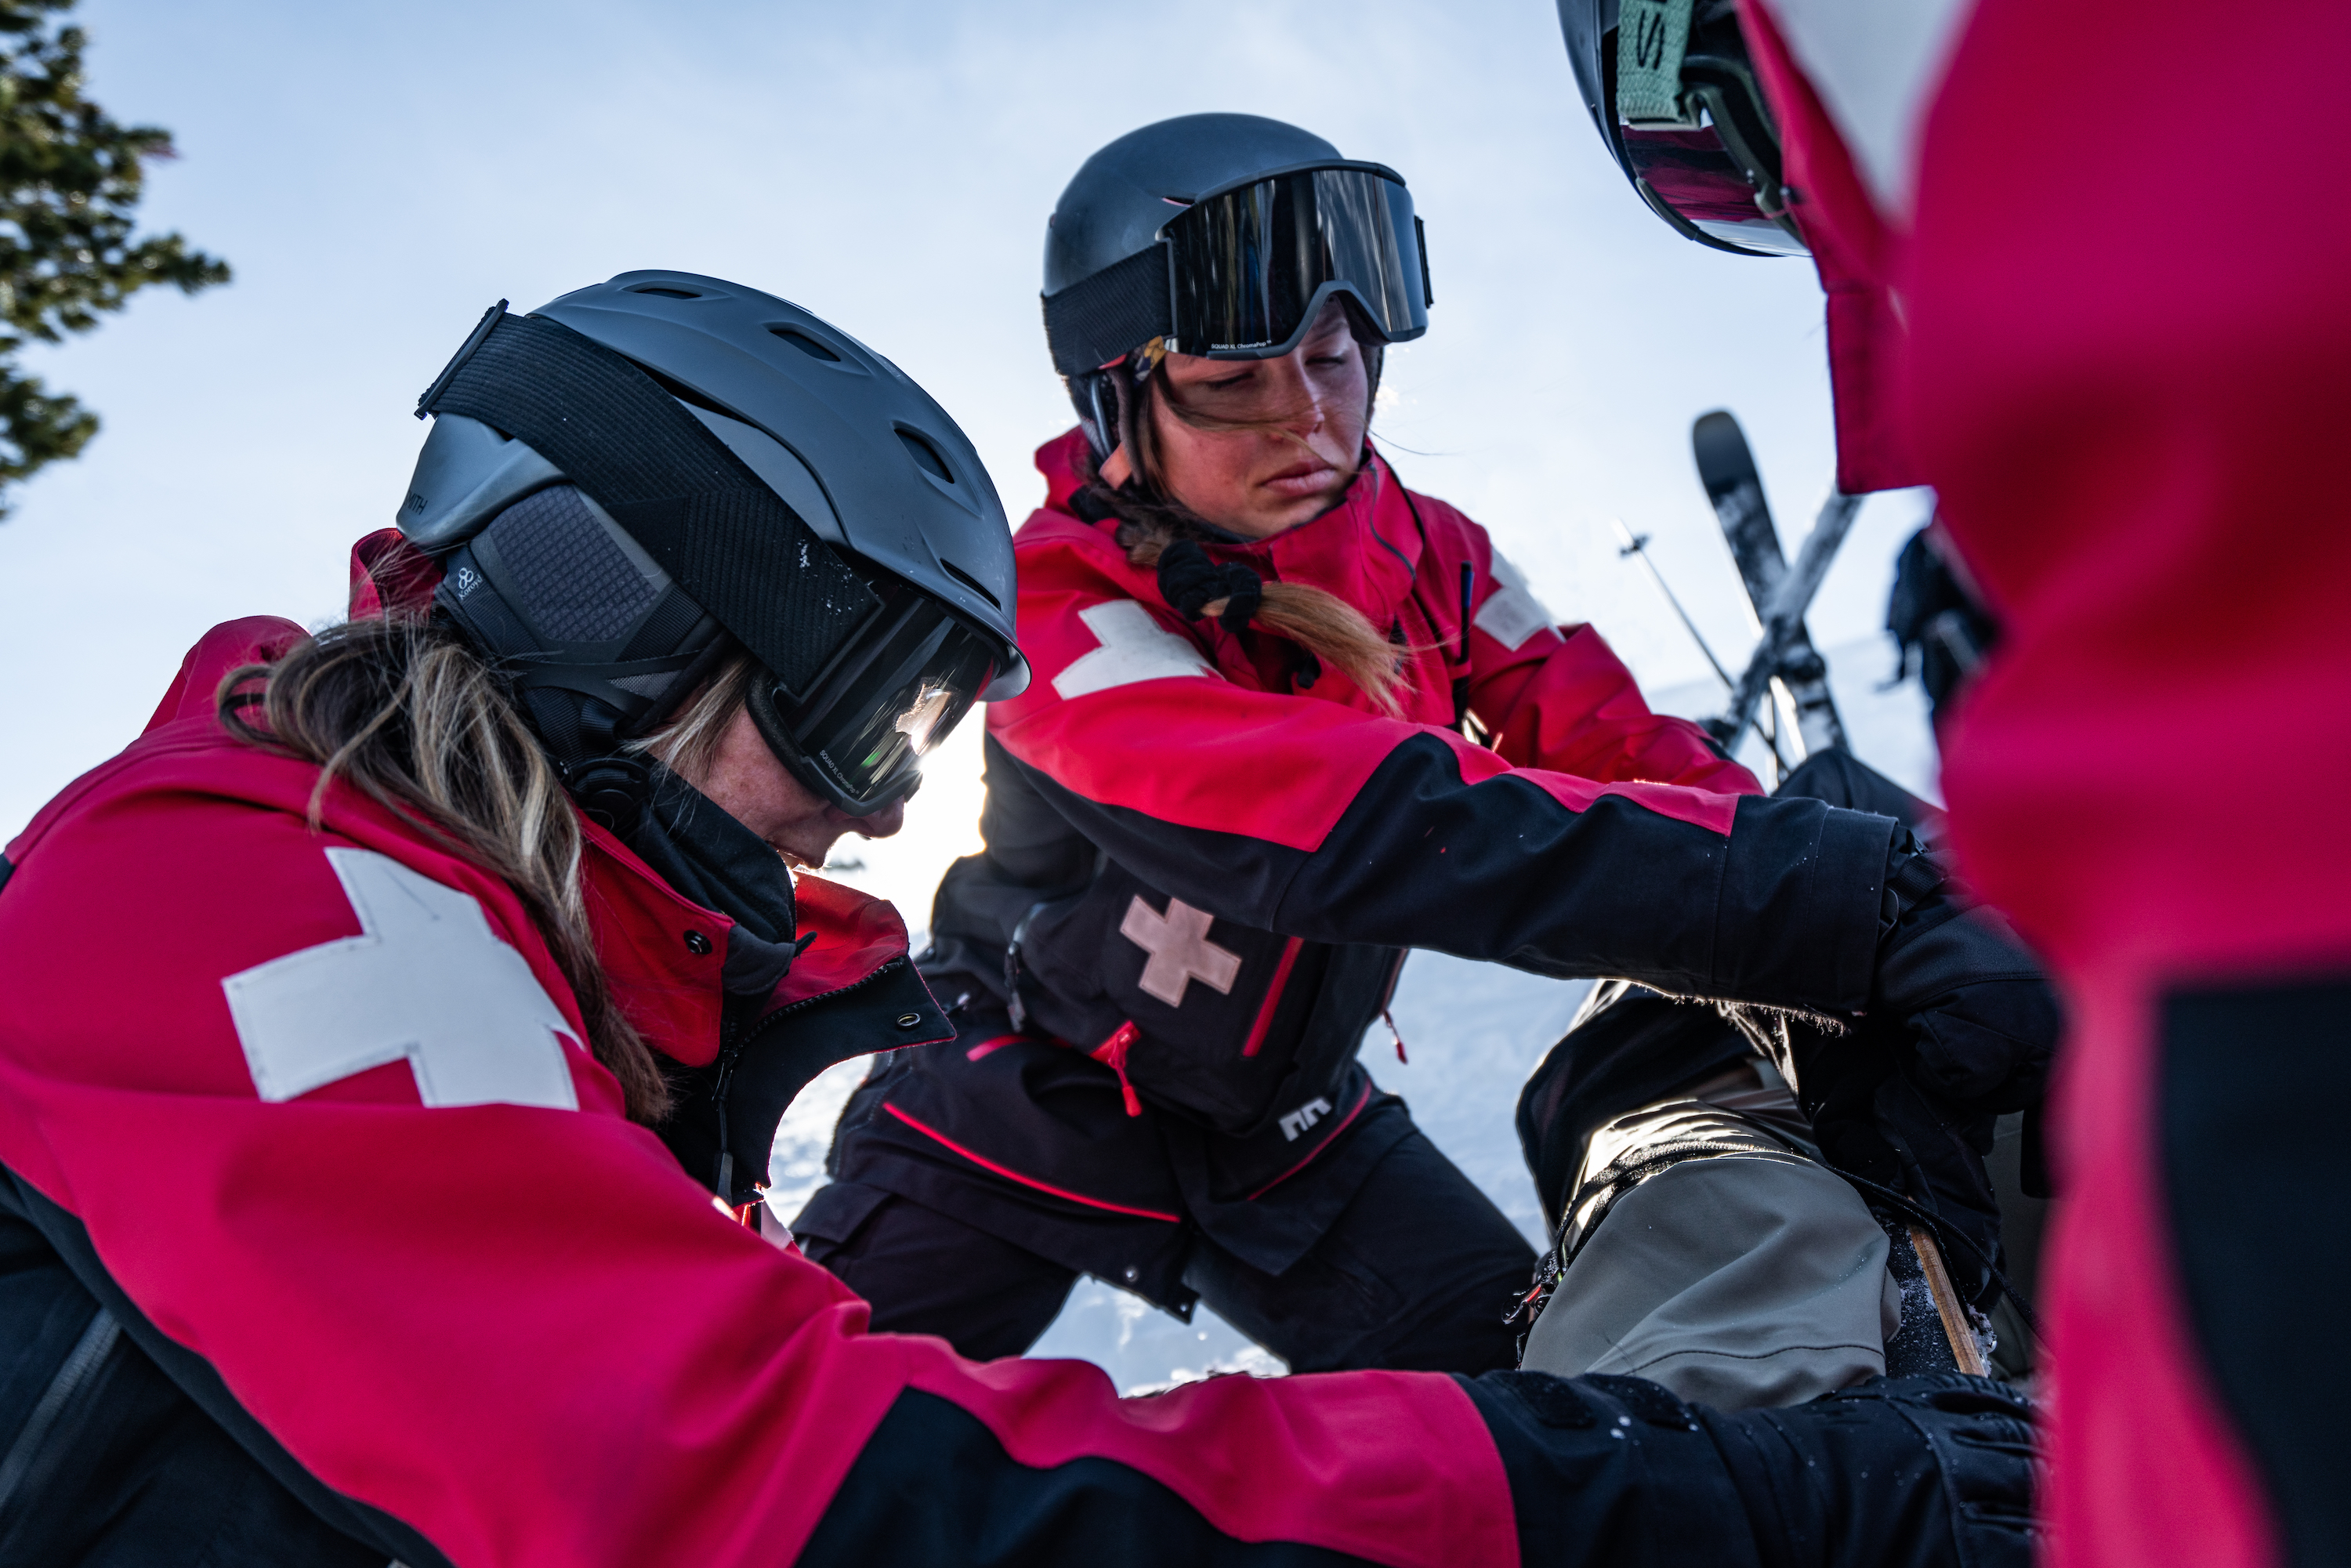 three ski patrollers in uniforms up close working on a patient on the mountain